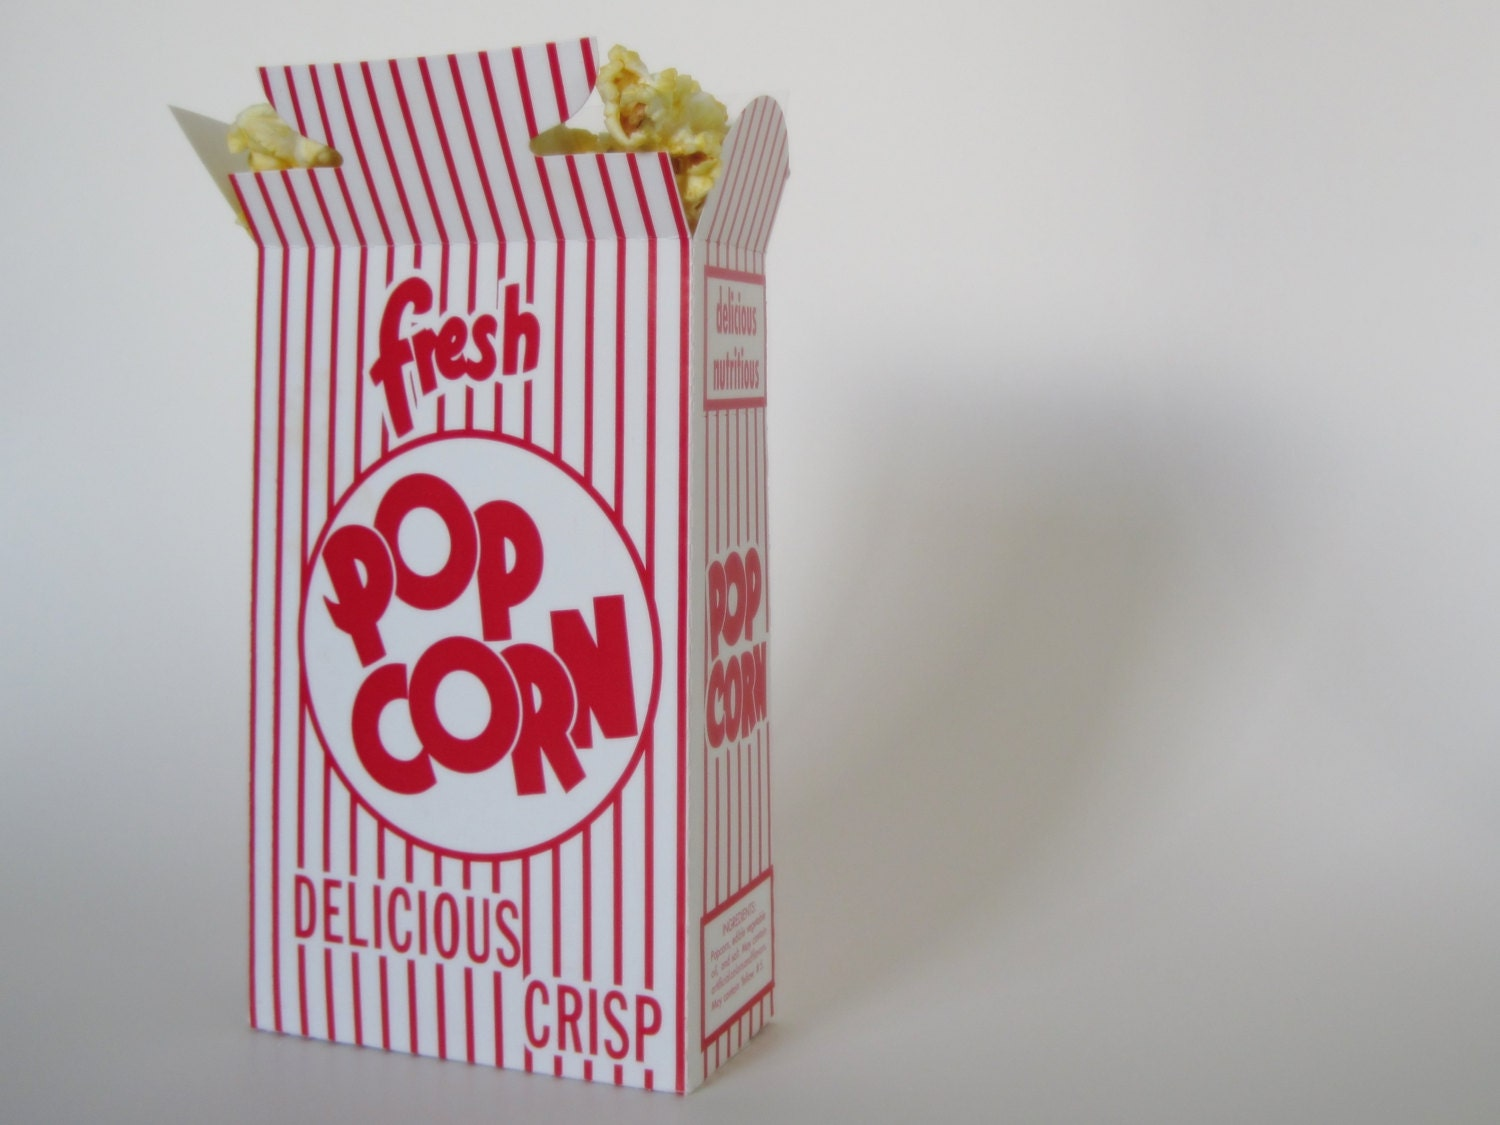 12 Retro Red and White Pop Corn PopCorn Box